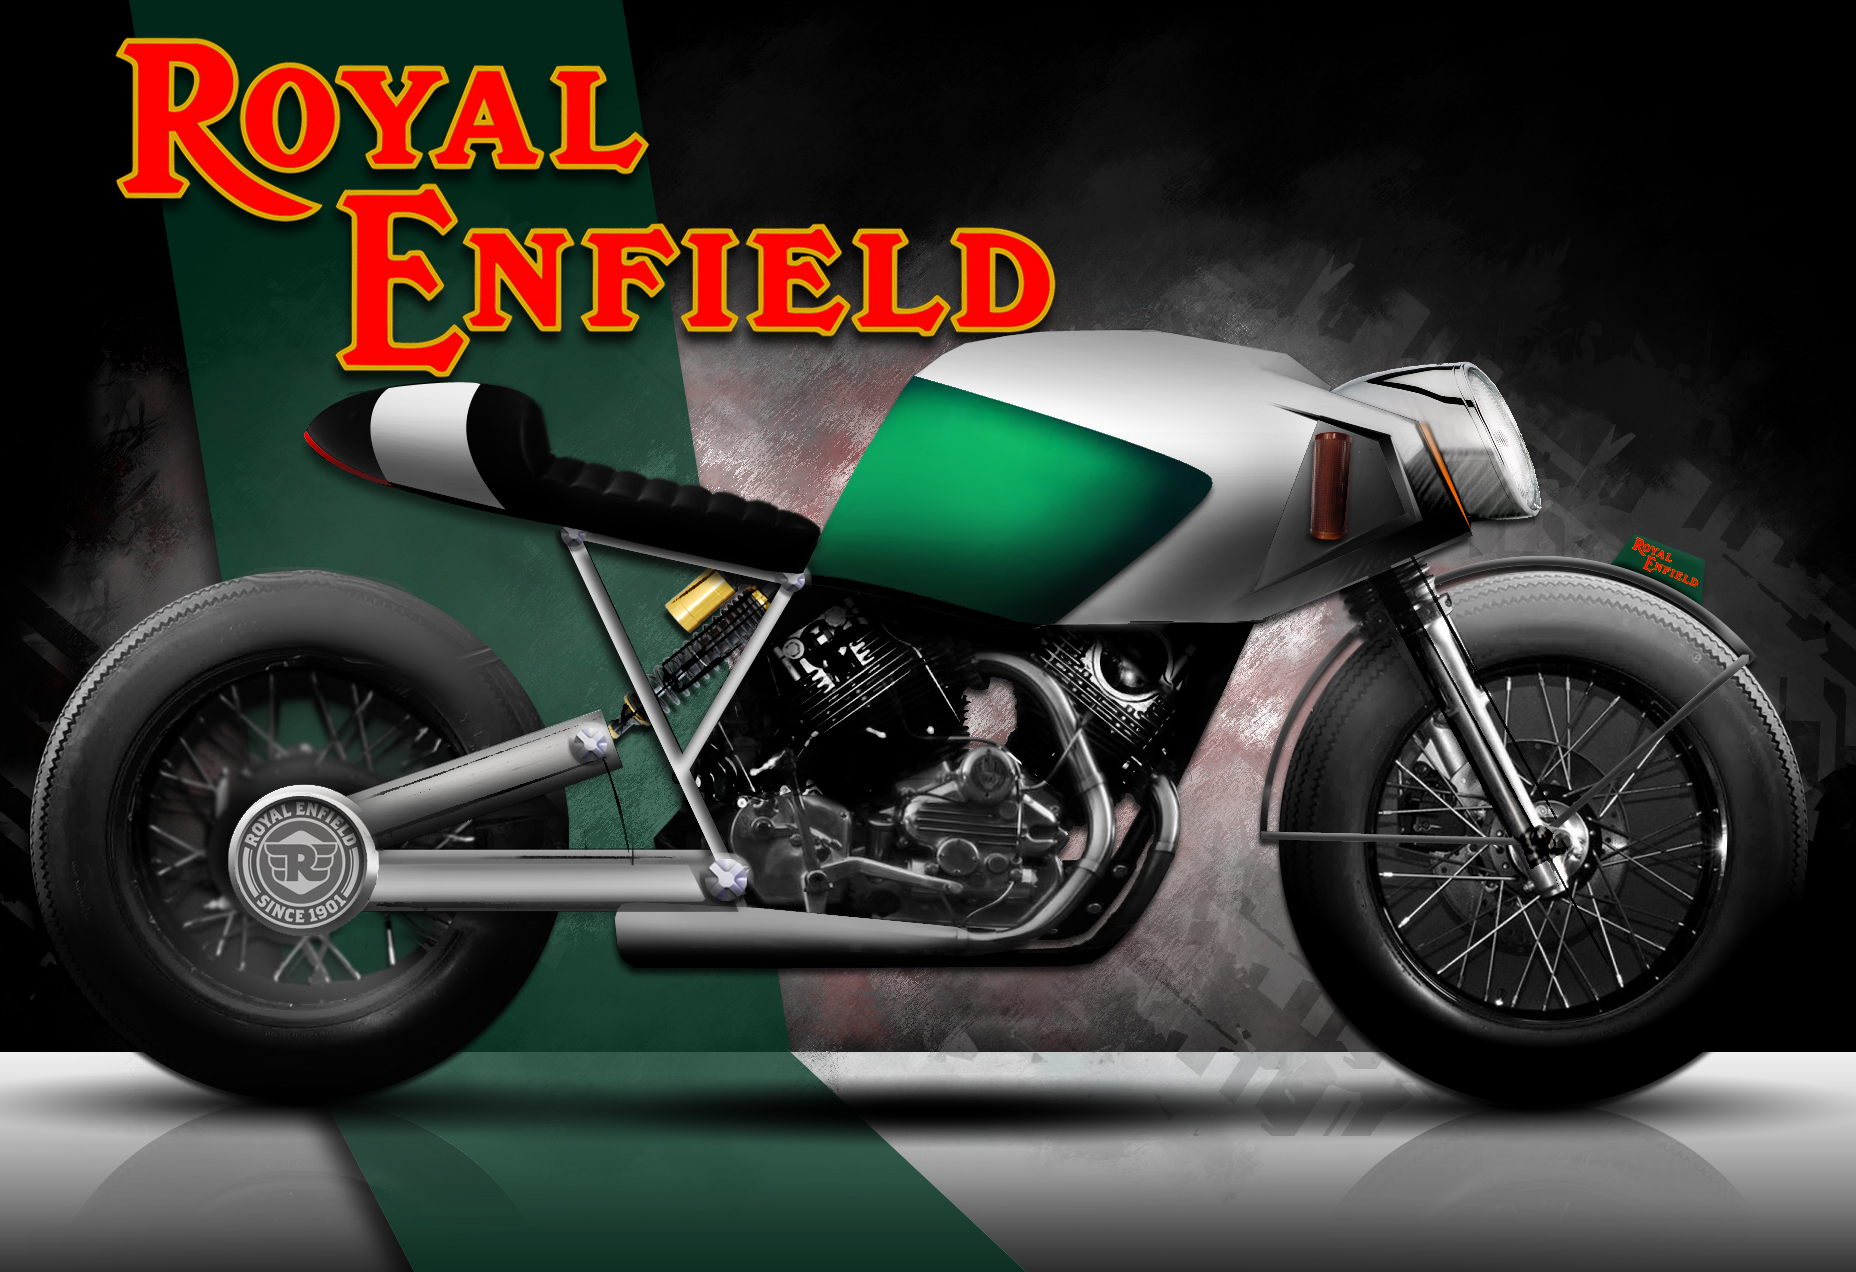 Royal Enfield Concept